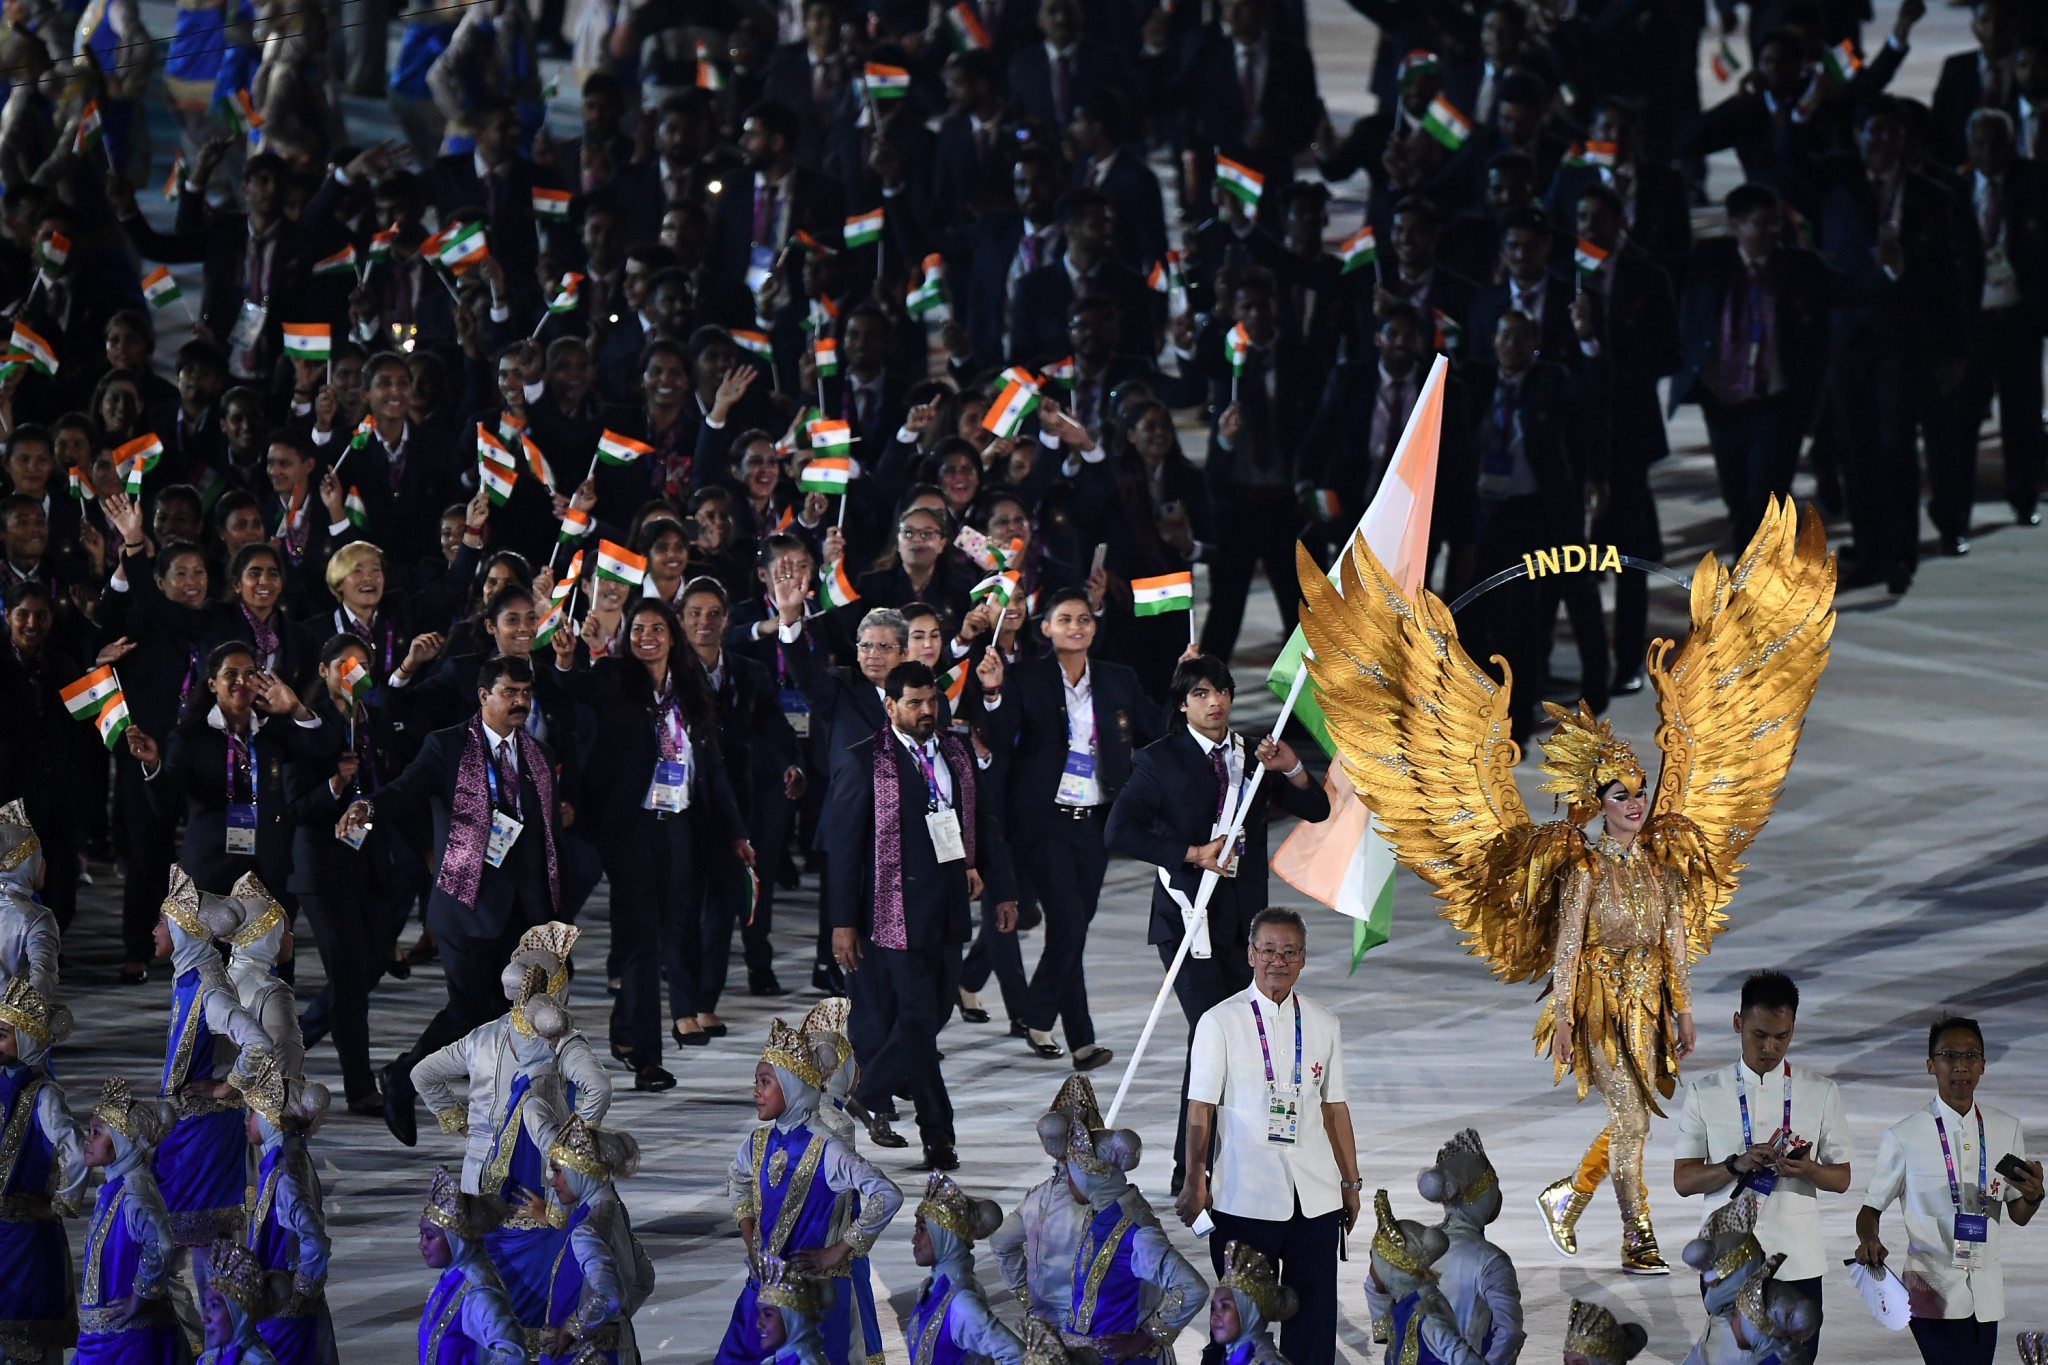 India amassed a best-ever Asian Games medal tally of 69 at Jakarta Palembang 2018 ©Getty Images